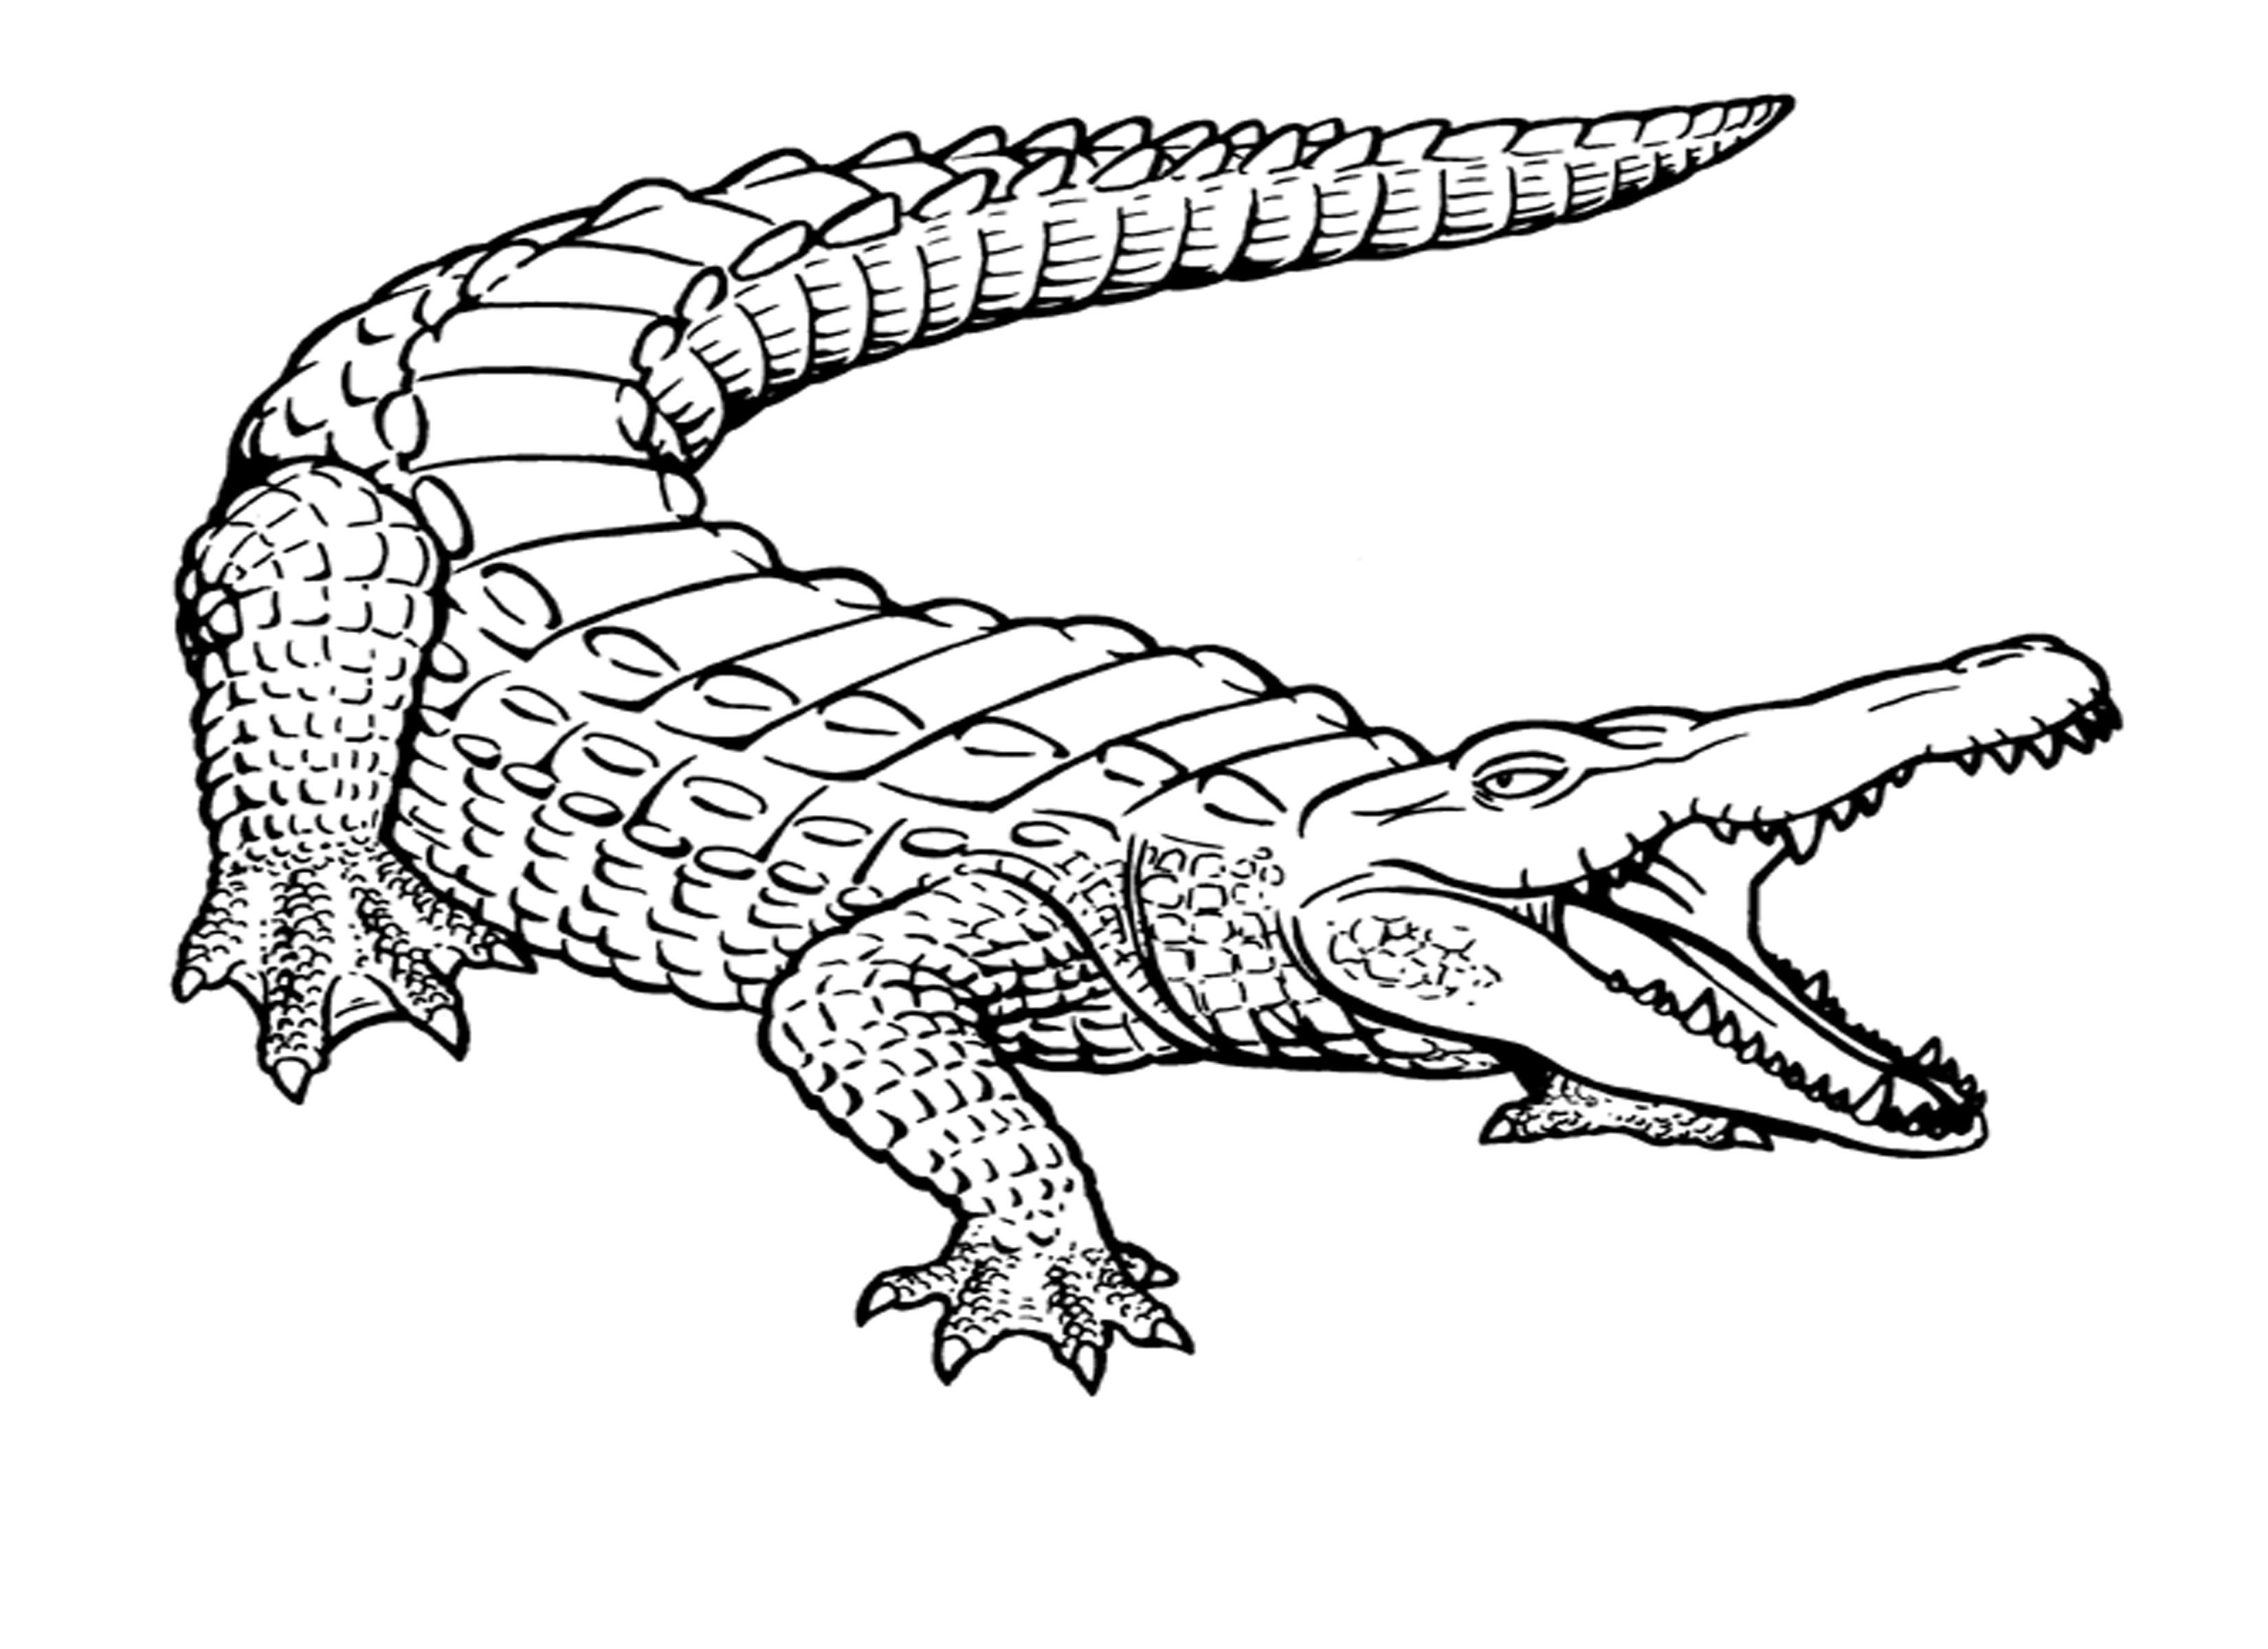 picture of a crocodile to colour crocodile coloring pages to download and print for free of crocodile to colour a picture